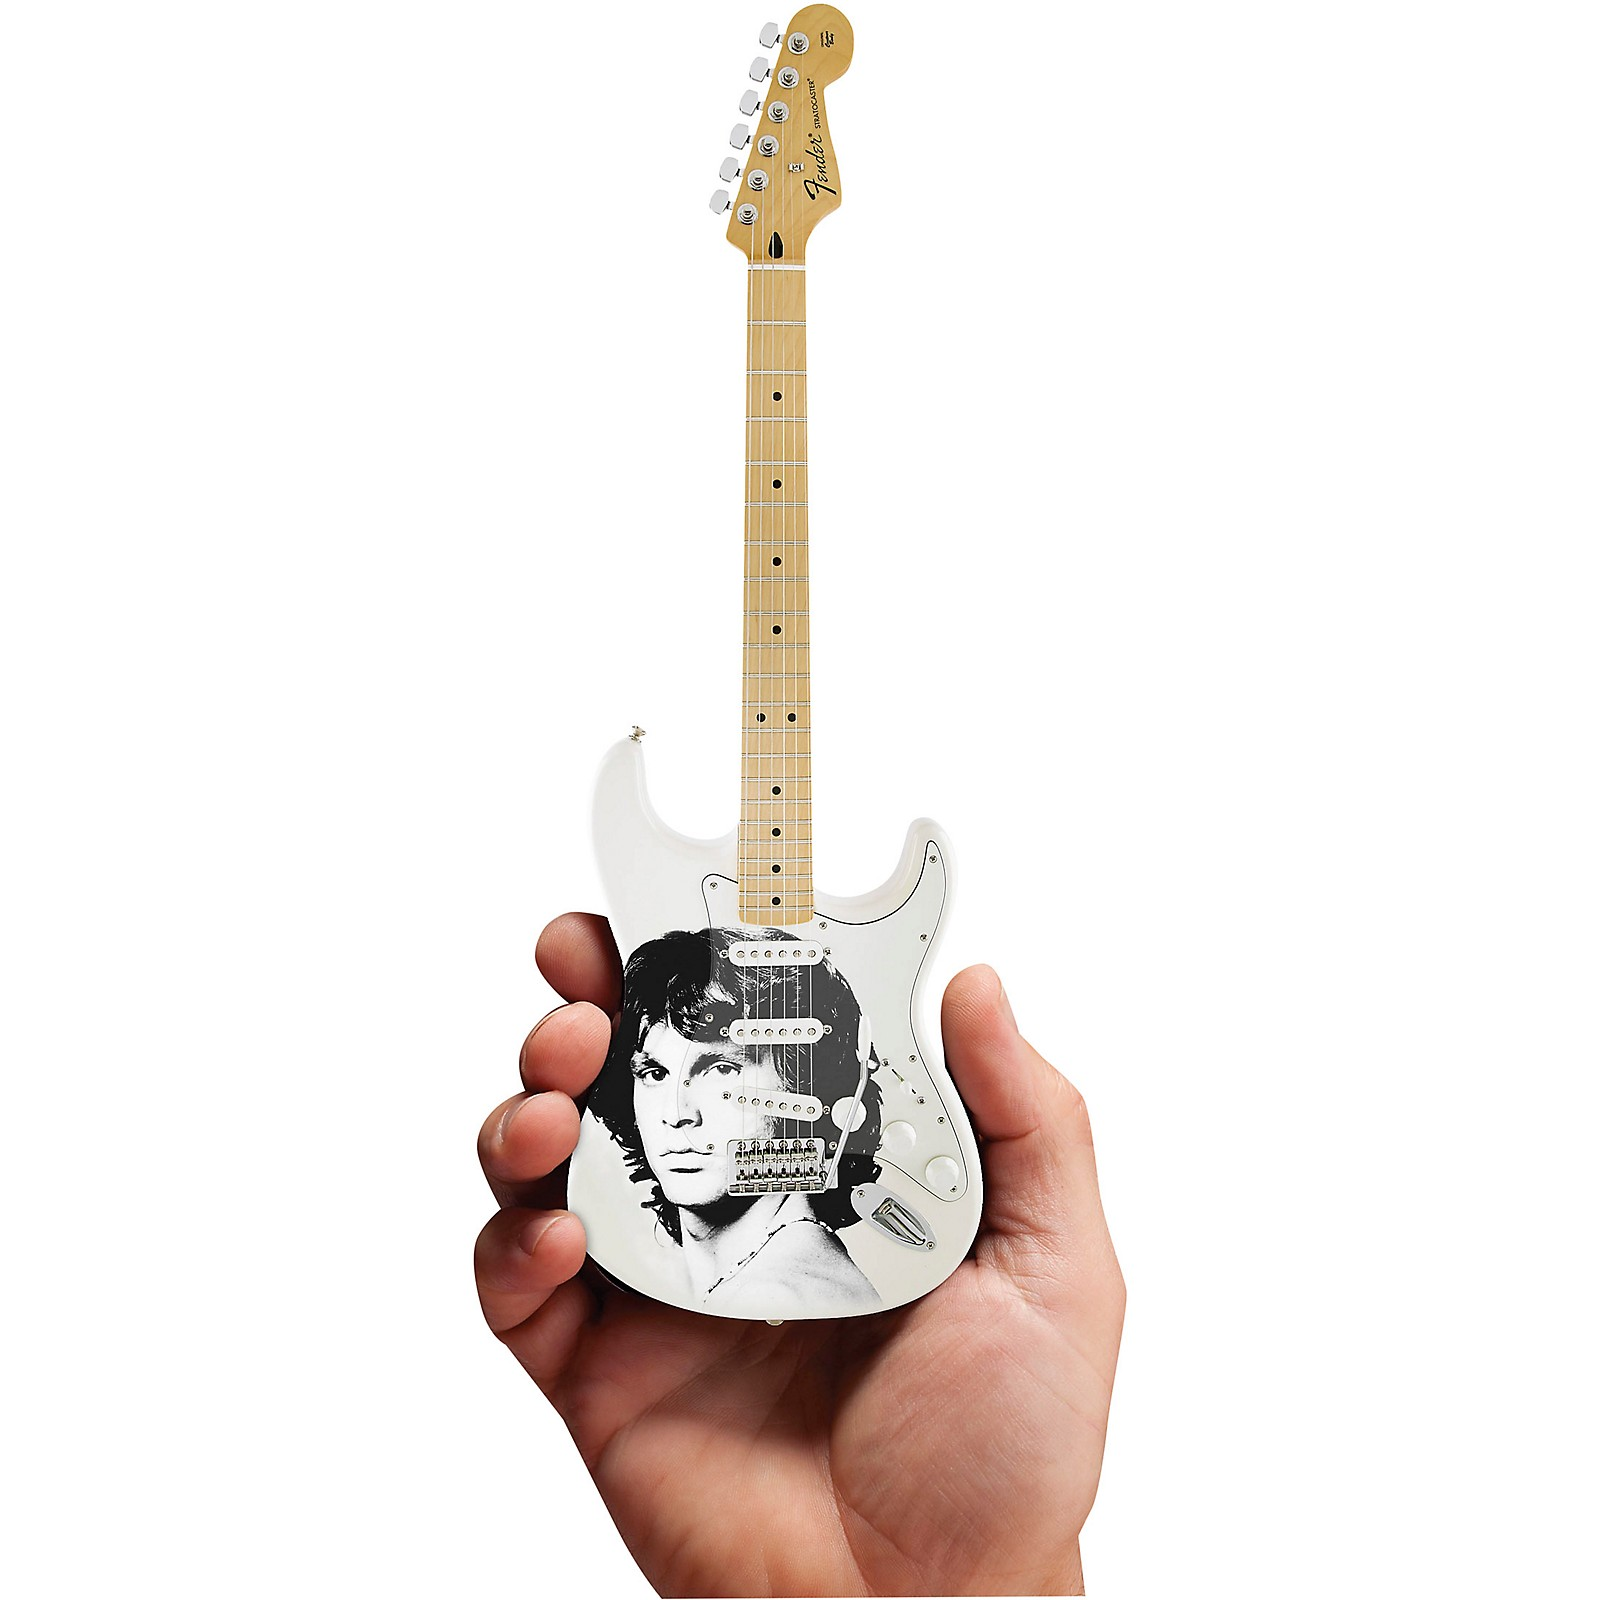 Axe Heaven Jim Morrison Tribute Fender Stratocaster Officially Licensed Miniature Guitar Replica